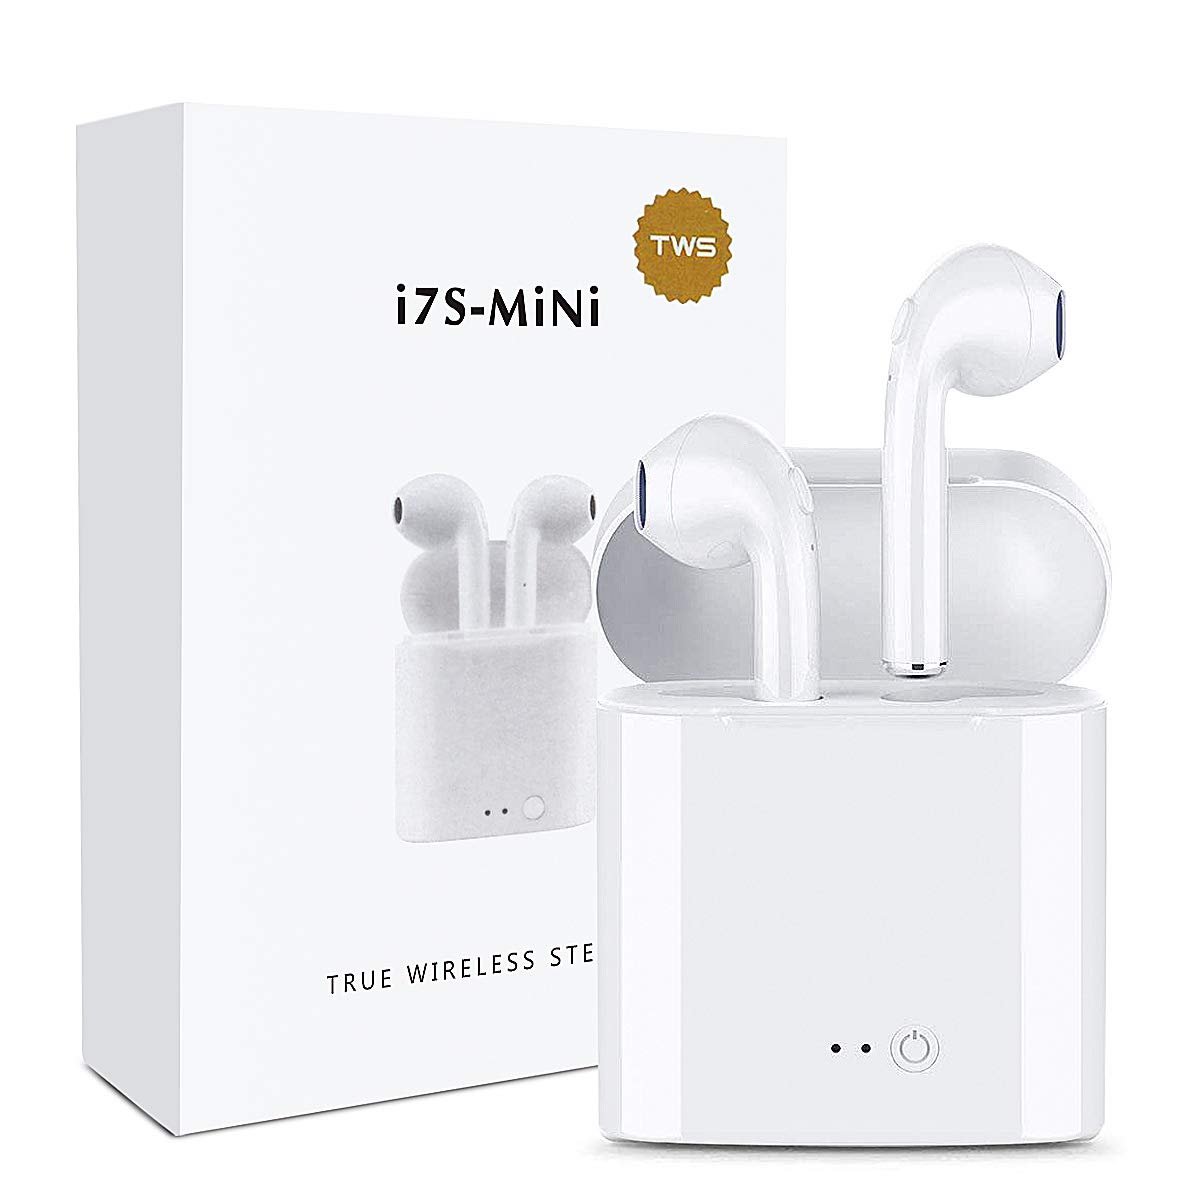 Winmoom Bluetooth Headset, Wireless Headphone/Sports Headphones, Sweat Headphones, Mini in-Ear Earphones with Microphone, Noise Reduction Charging Case for Android and Other Smartphones WirelessEarBudsCase-B102